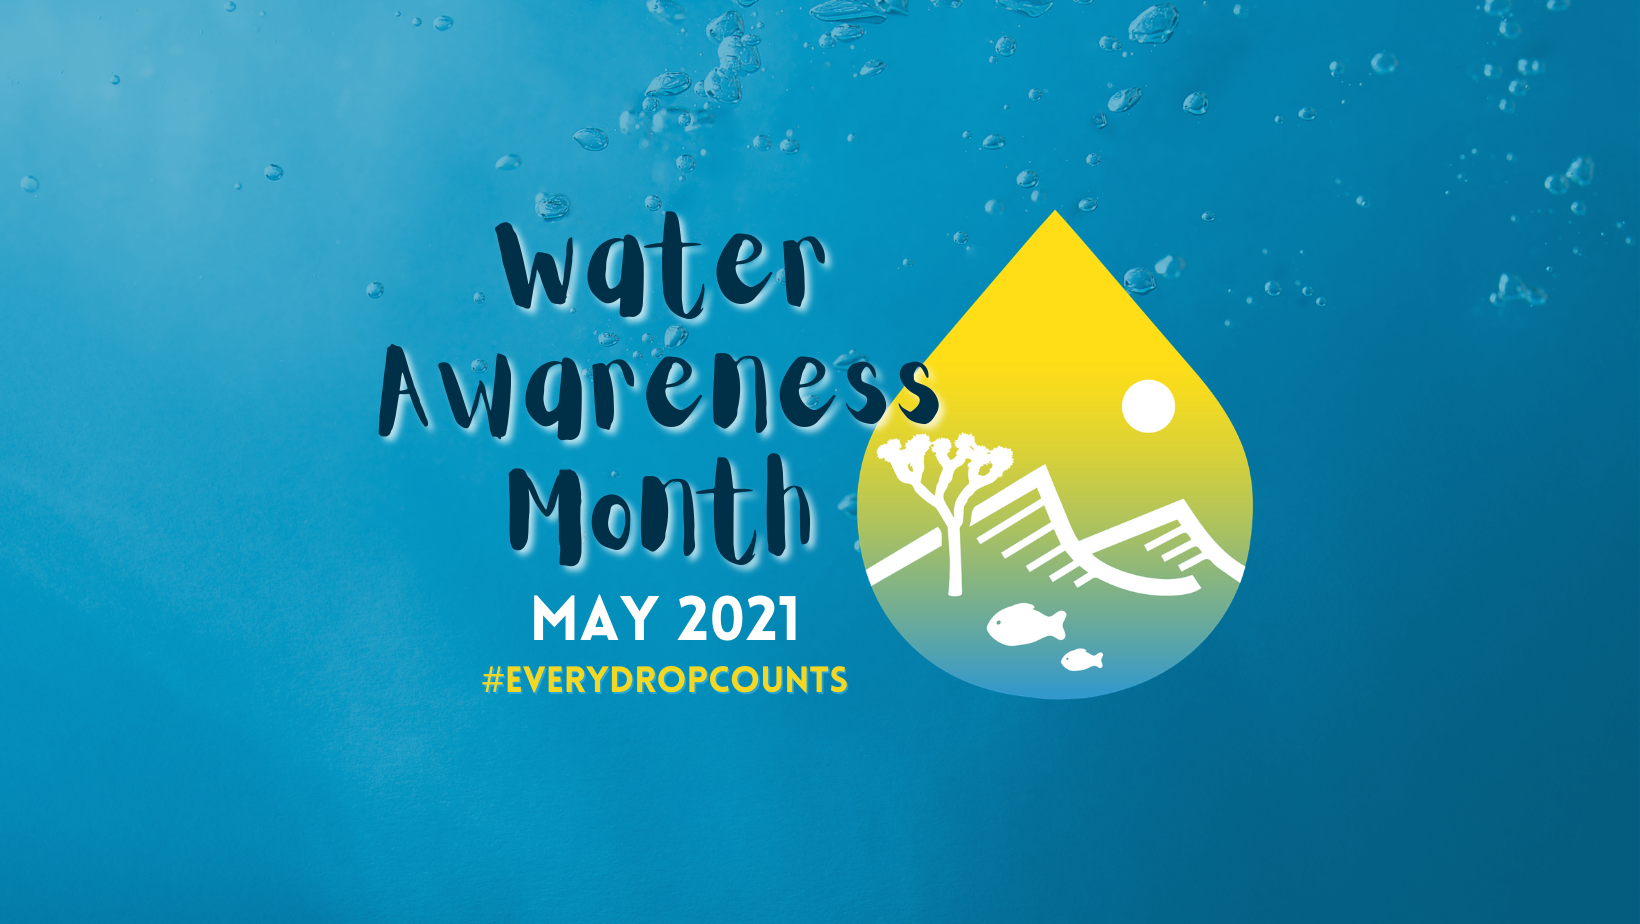 Every Drop Counts, and Not Just in the Month of May